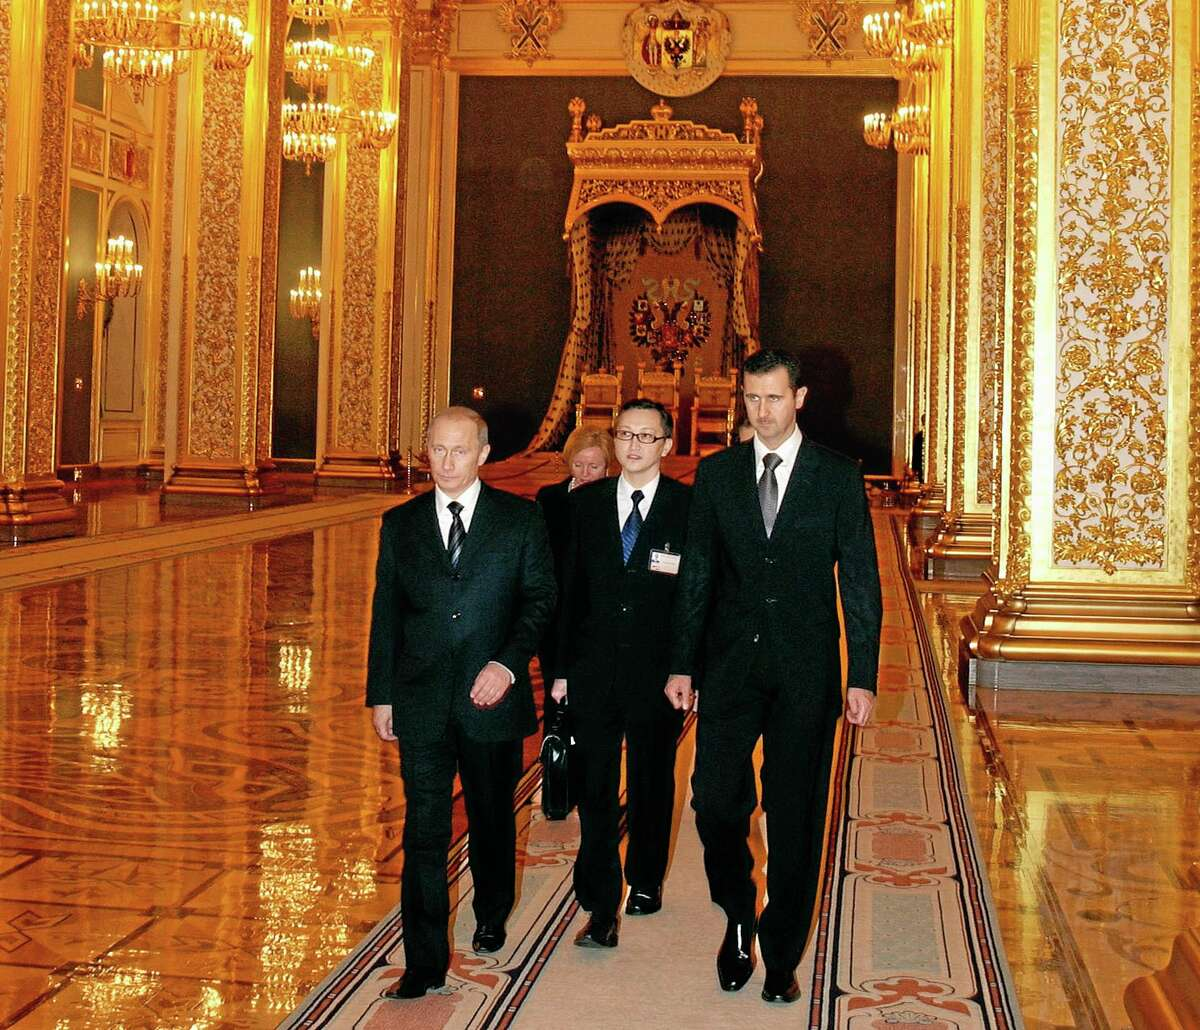 In this Jan. 25, 2005, file photo Syrian President Bashar Assad, right, and Russian President Vladimir Putin, left, walk during their meeting in the Kremlin in Moscow during for a four-day visit amid Israeli allegations that his government sought to buy Russian missiles. Assad and his father before him have been Moscow's foremost Arab allies for decades. Currently much of the weaponry Syria deploys against the rebels fighting to the Assad regime comes from Russia. Even as evidence mounts that his military launched the Aug. 21, 2013, chemical attack that the U.S. says killed more than 1,000 people, Russia insists that the rebels used the deadly chemicals.